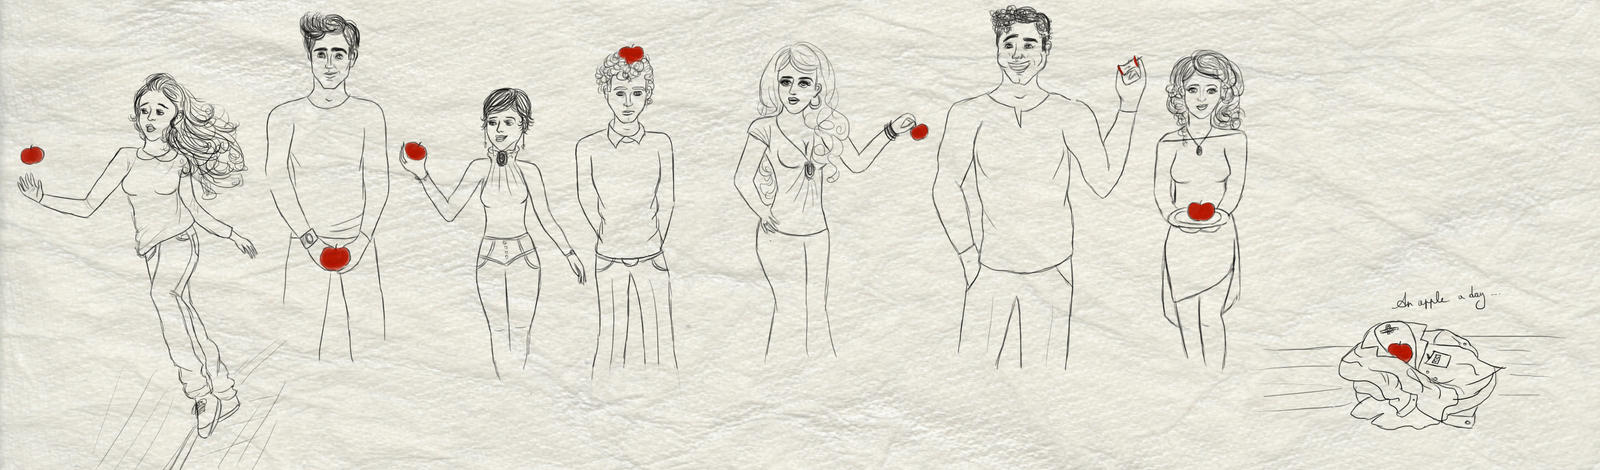 The Cullens hold apples WIP